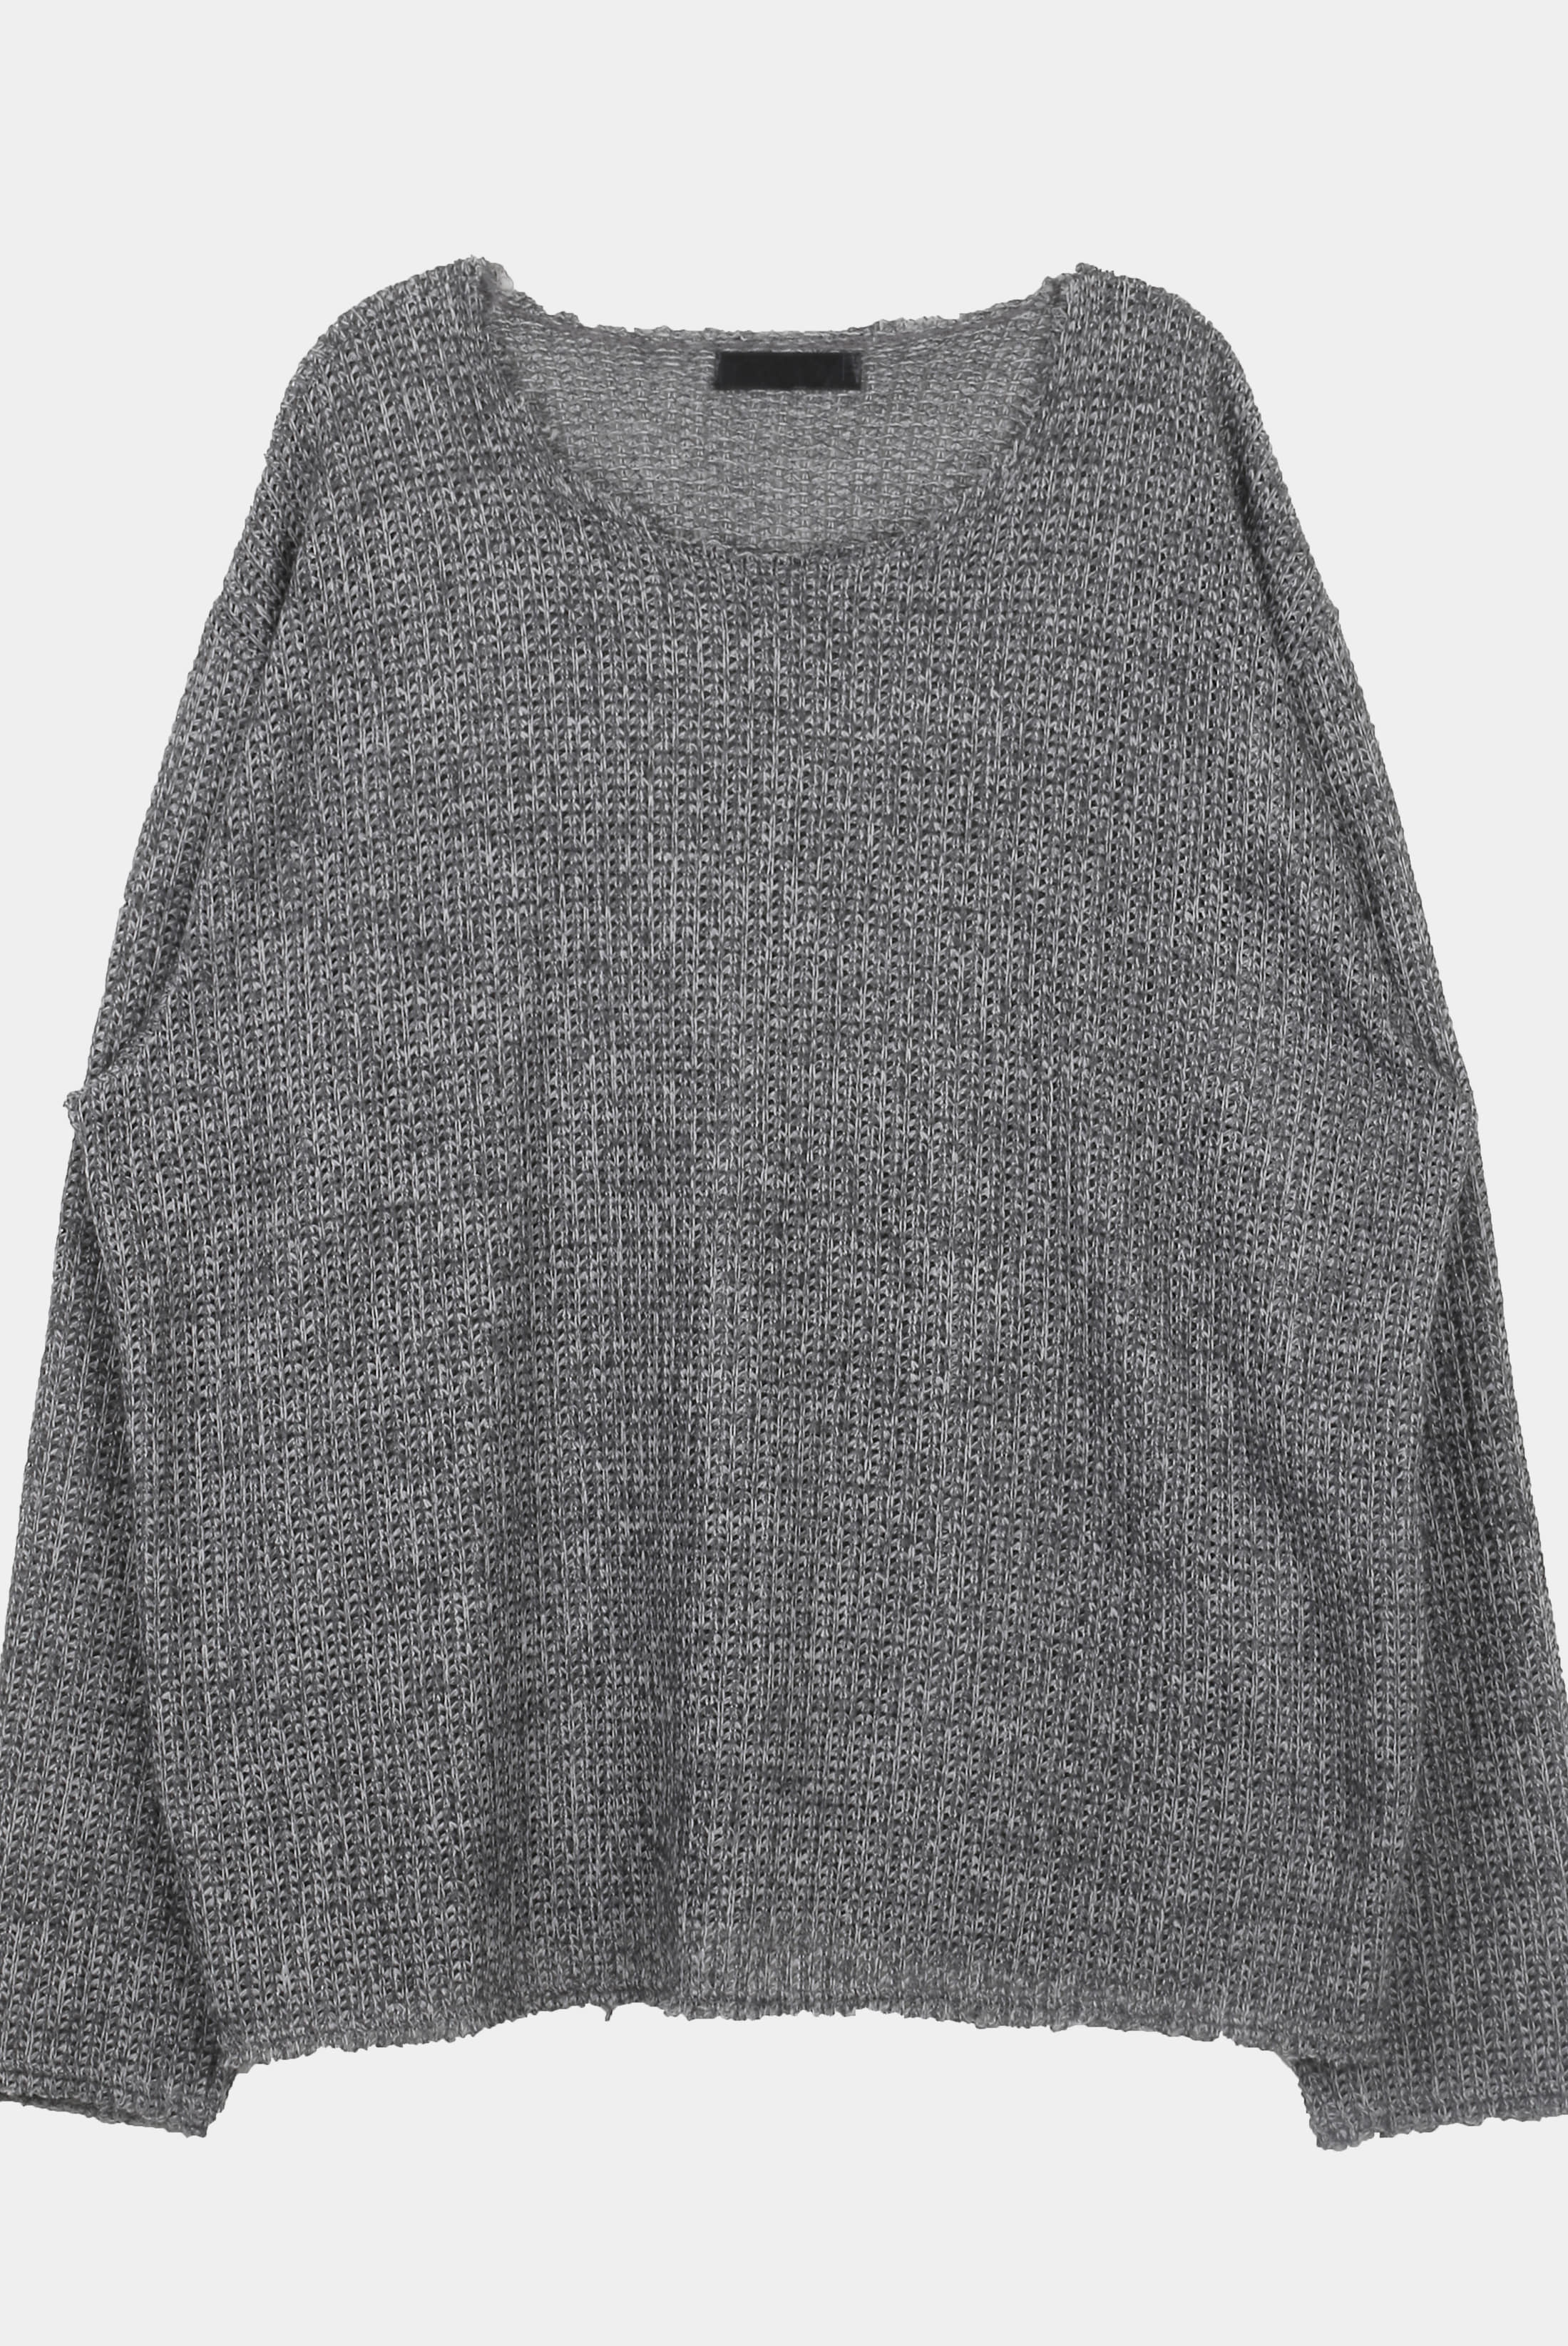 Raw_Edge Net Knitwear